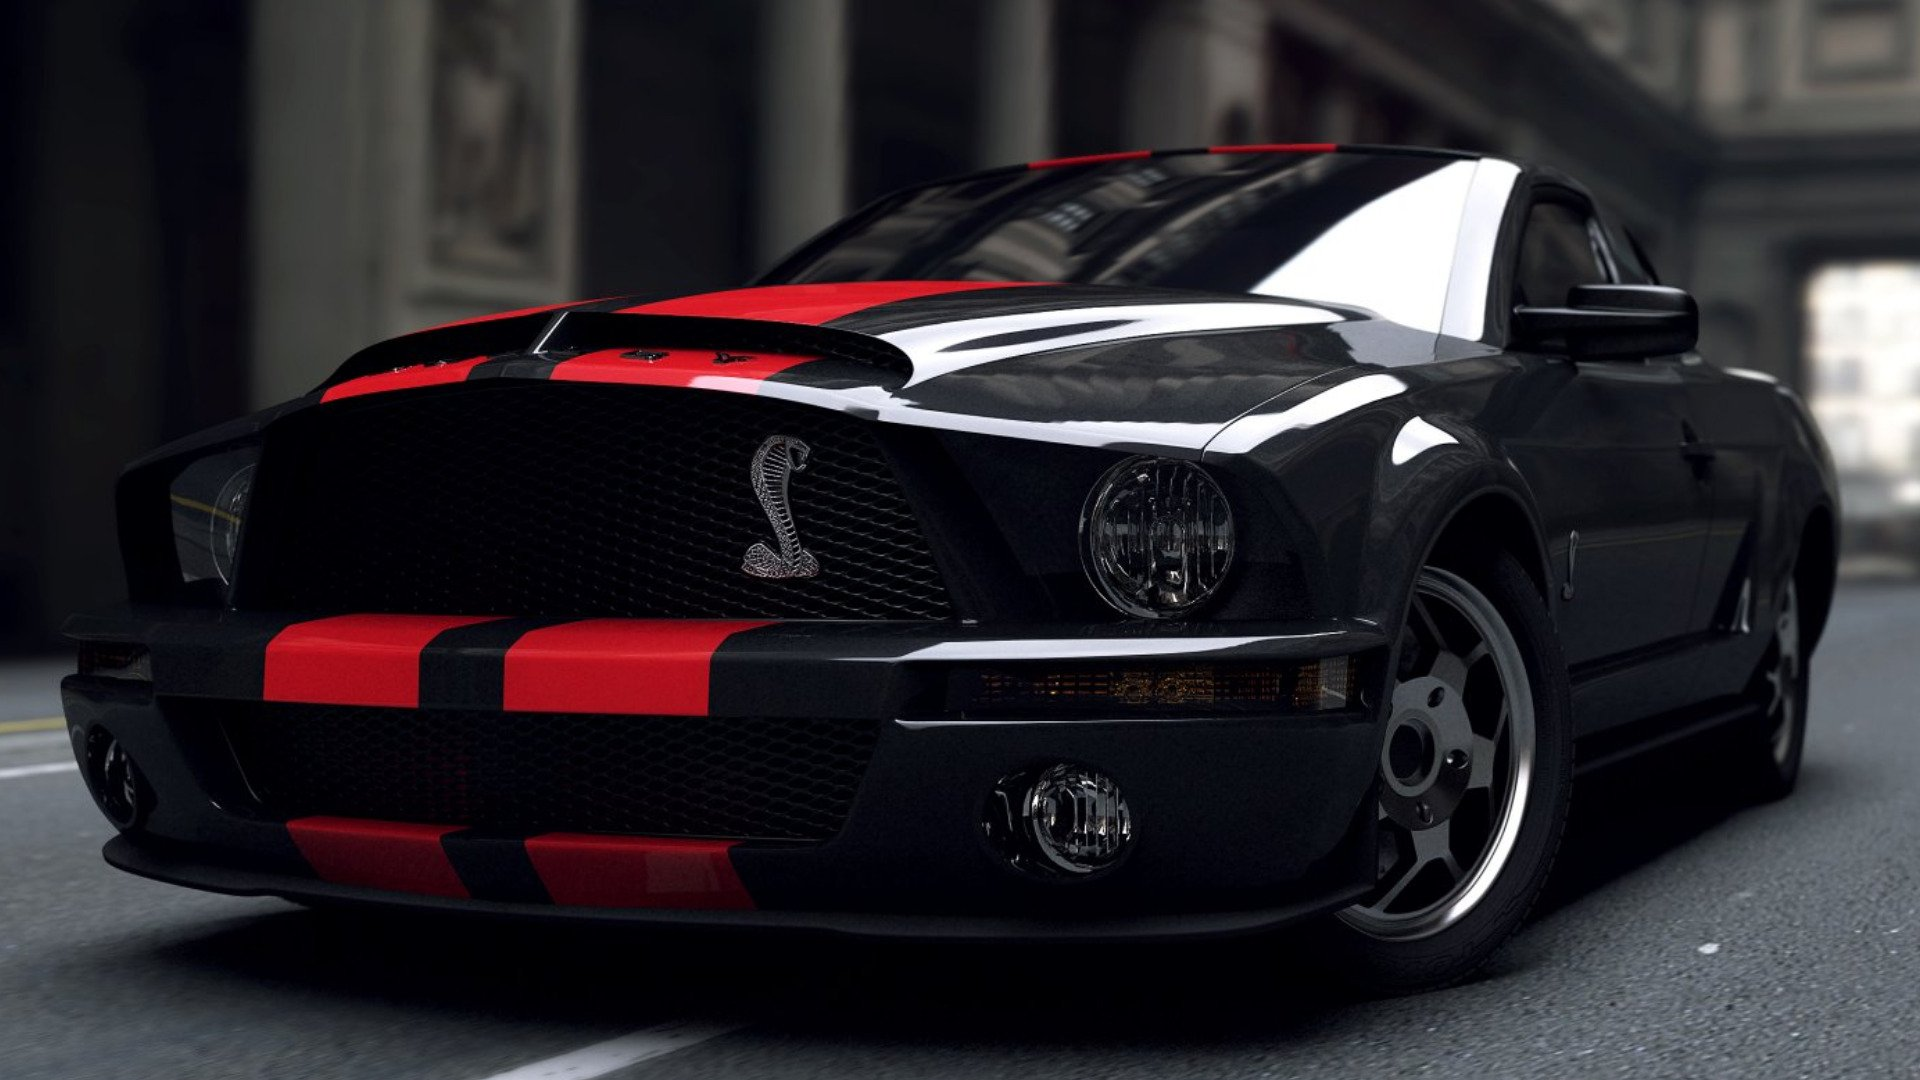 1920x1080 vehicles ford mustang shelby gt500 torinogt 13 18443 4 0 hd wallpaper background image id267587